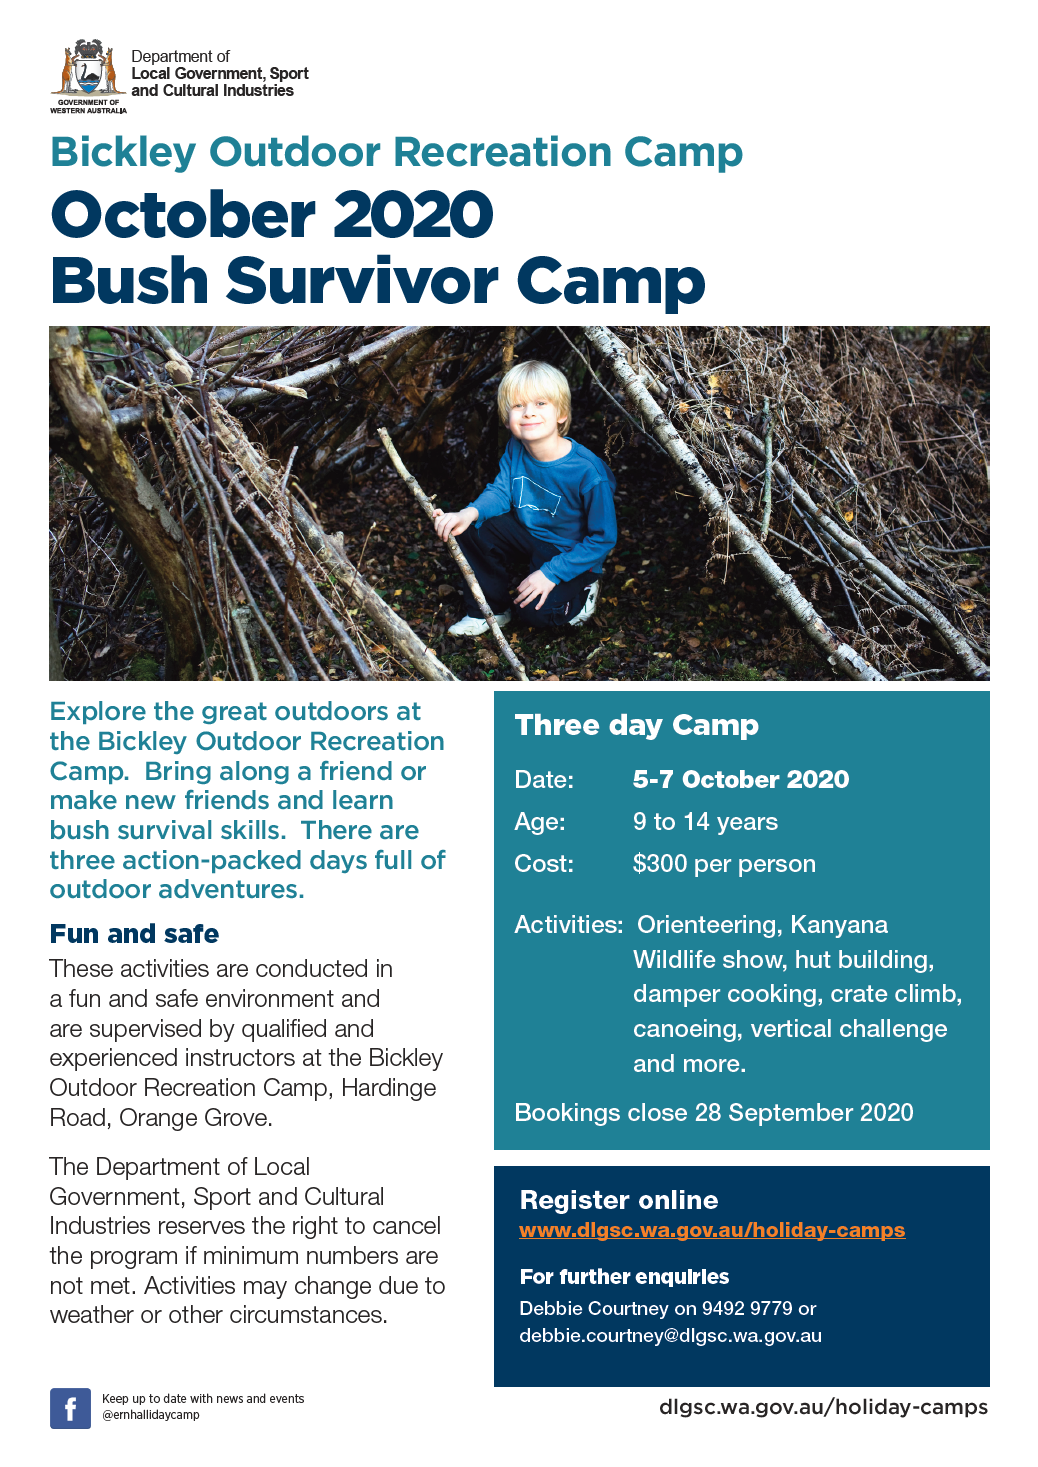 Bickley Bush Survivor October 2020 flyer